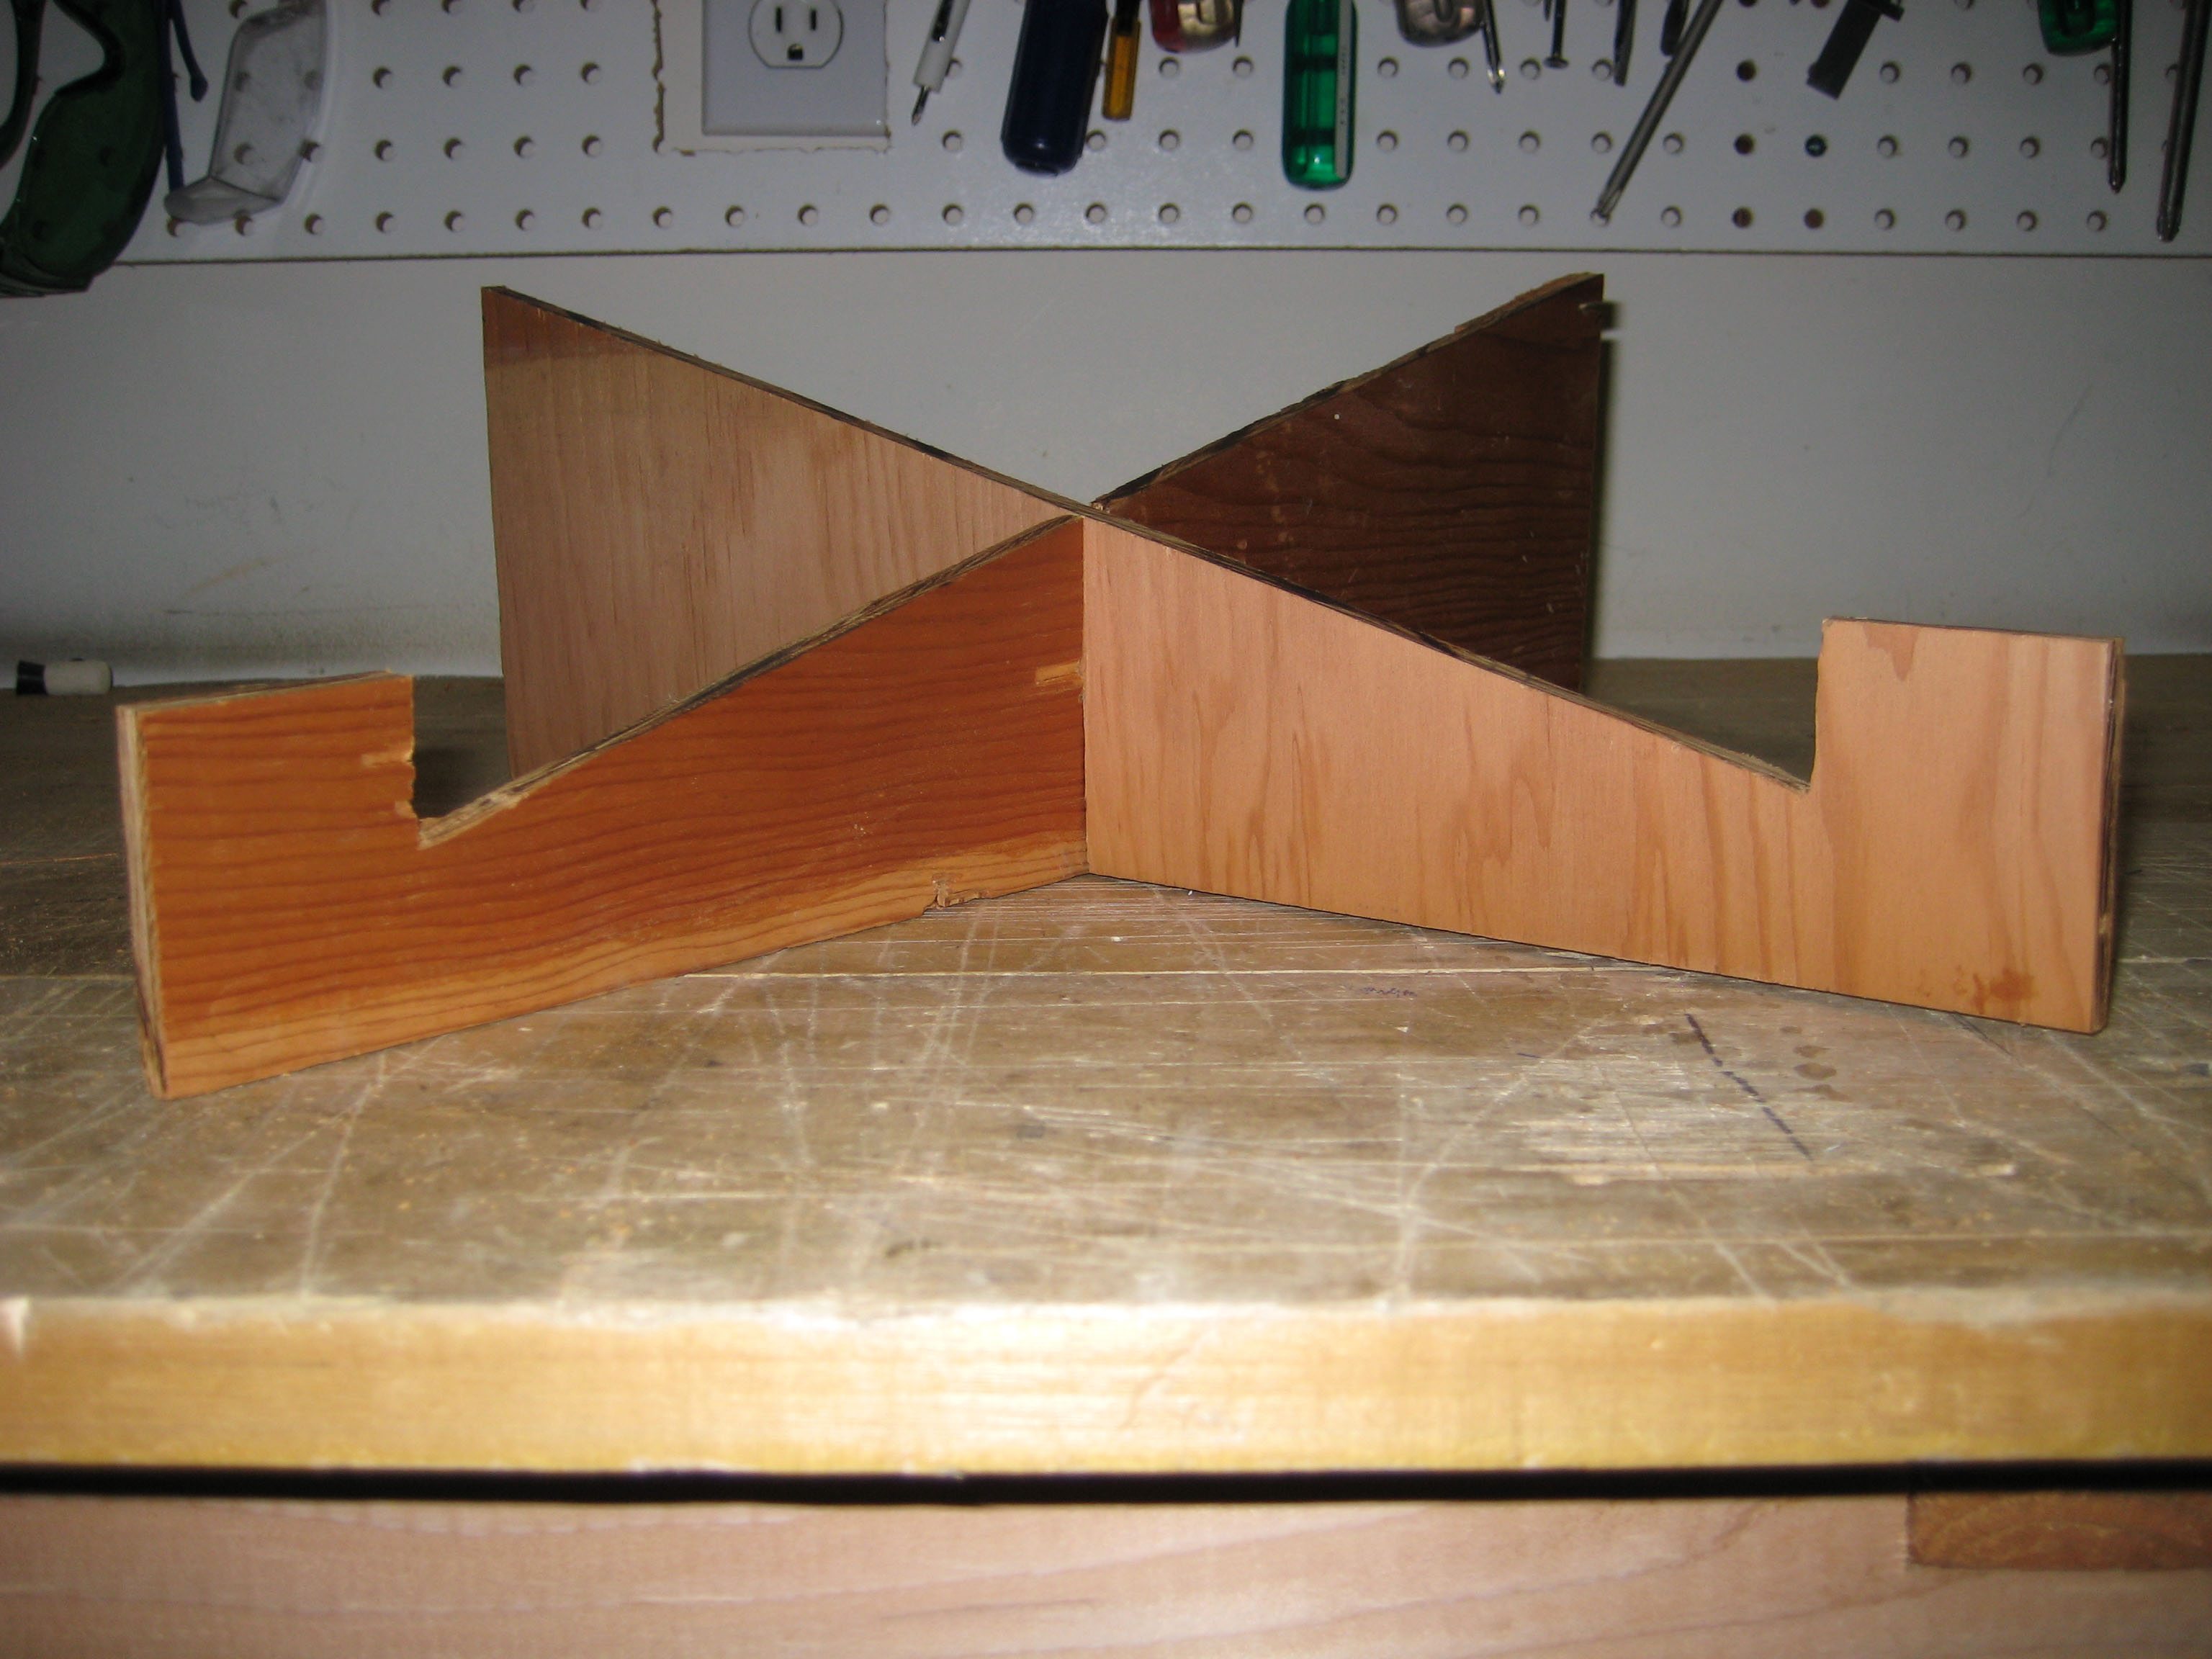 Picture of Extra Credit - Making a Plywood Stand